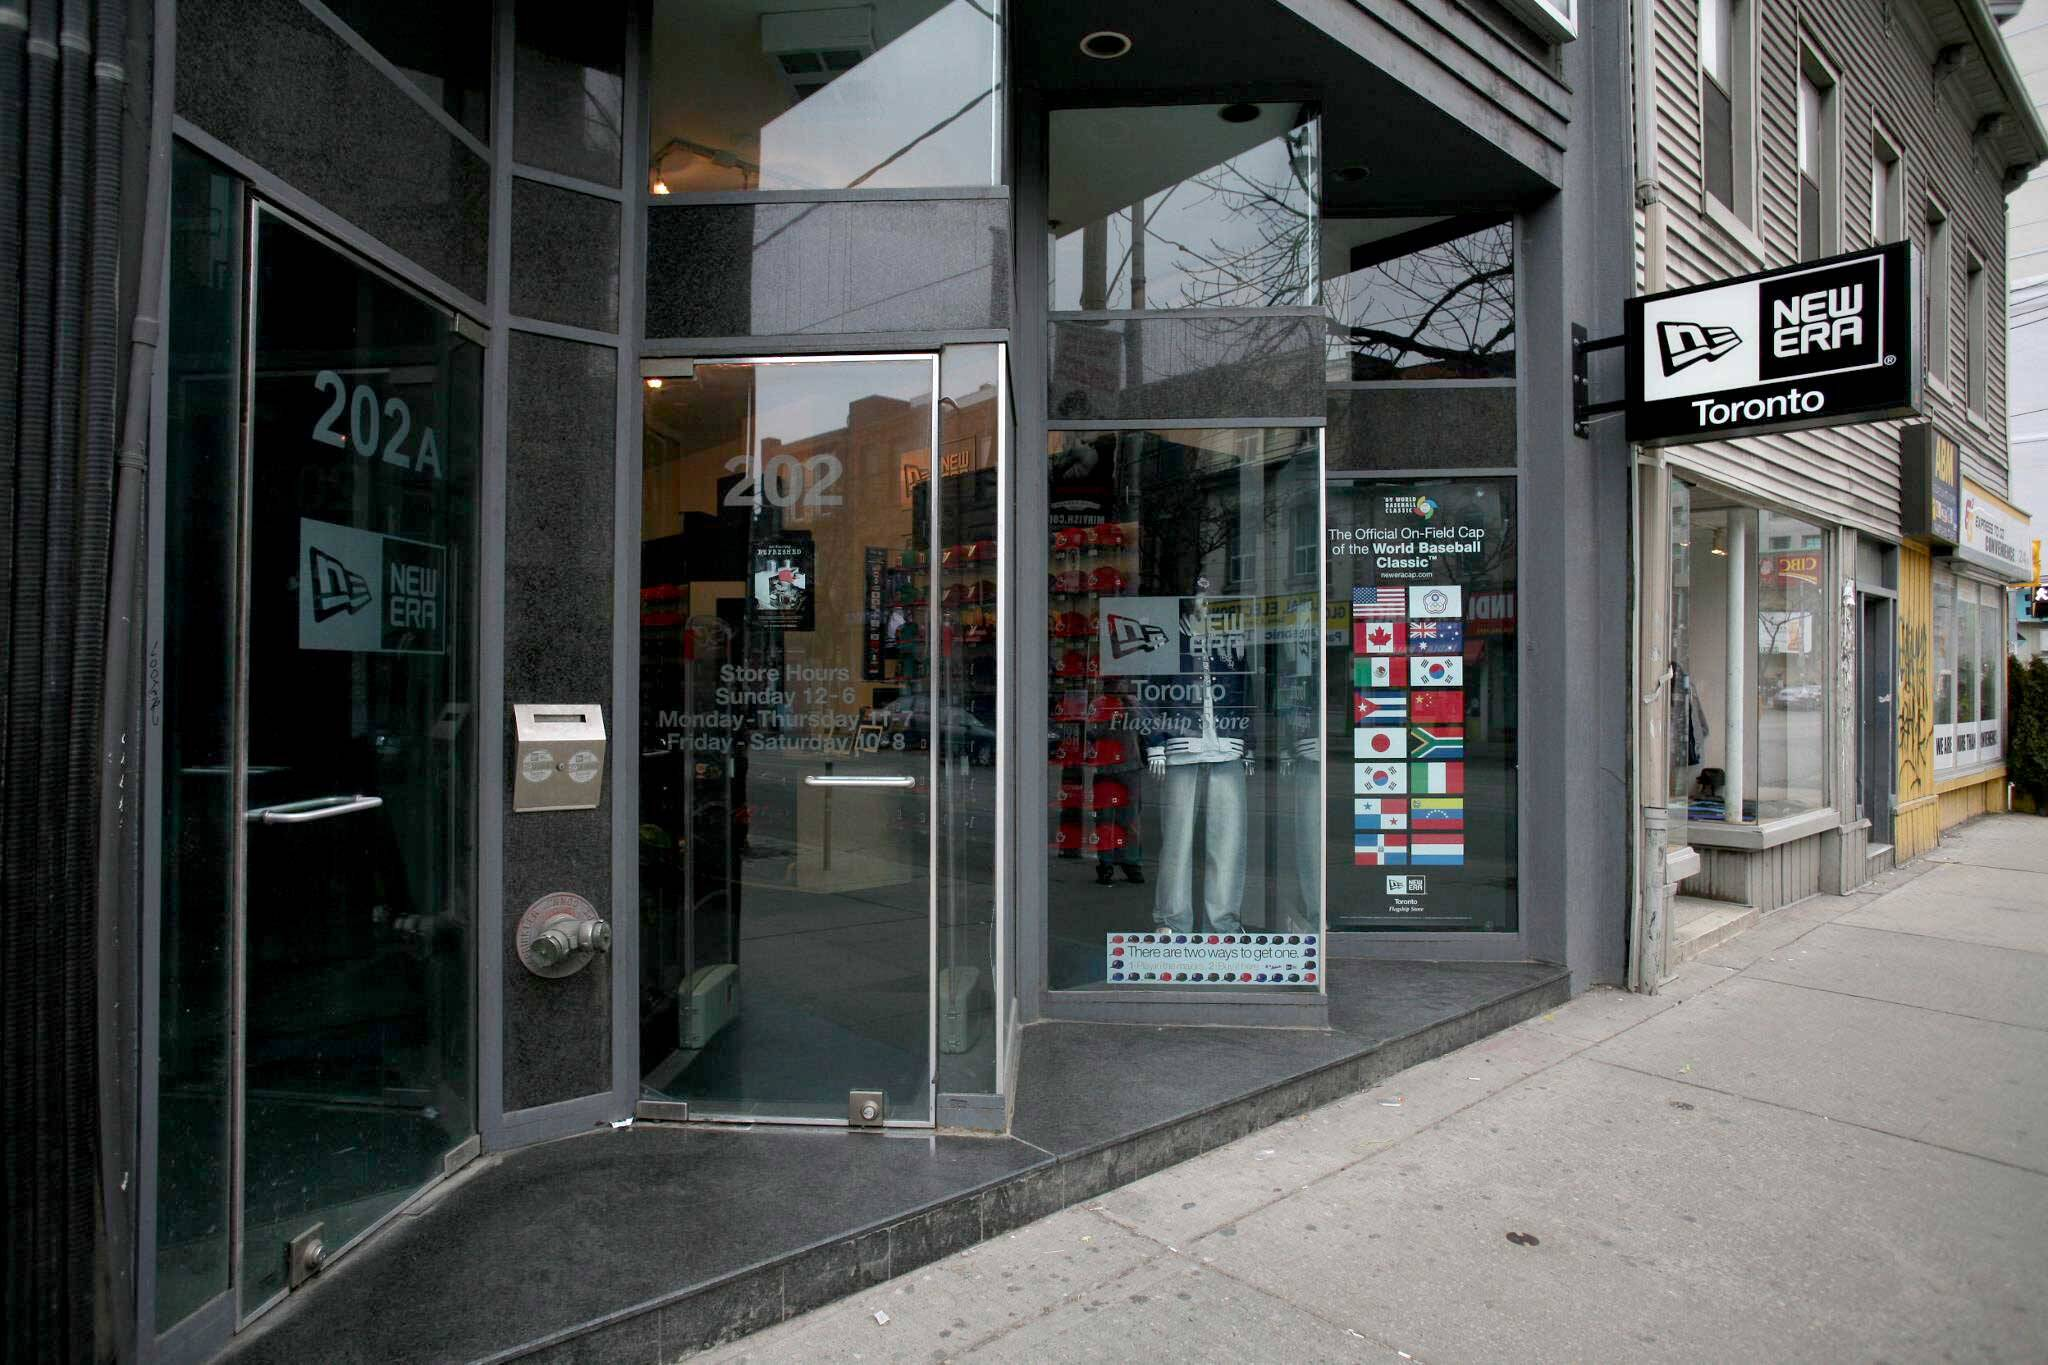 e290eb281d7ce New Era is closing their flagship store in Toronto